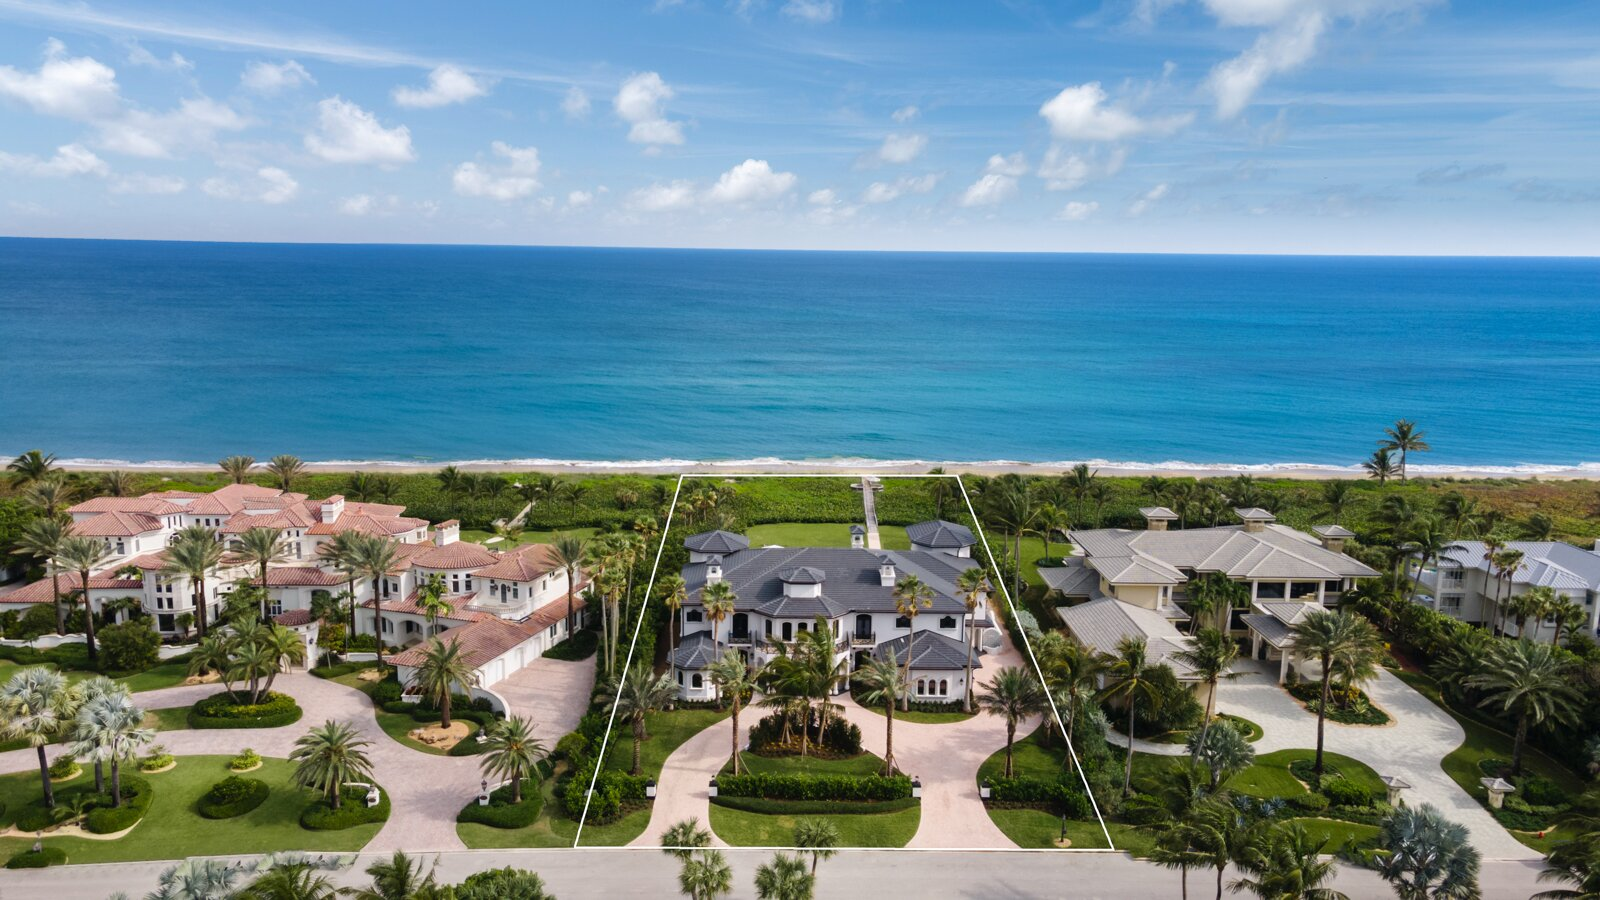 Florida Estate with Versace Pool asks $10.95M